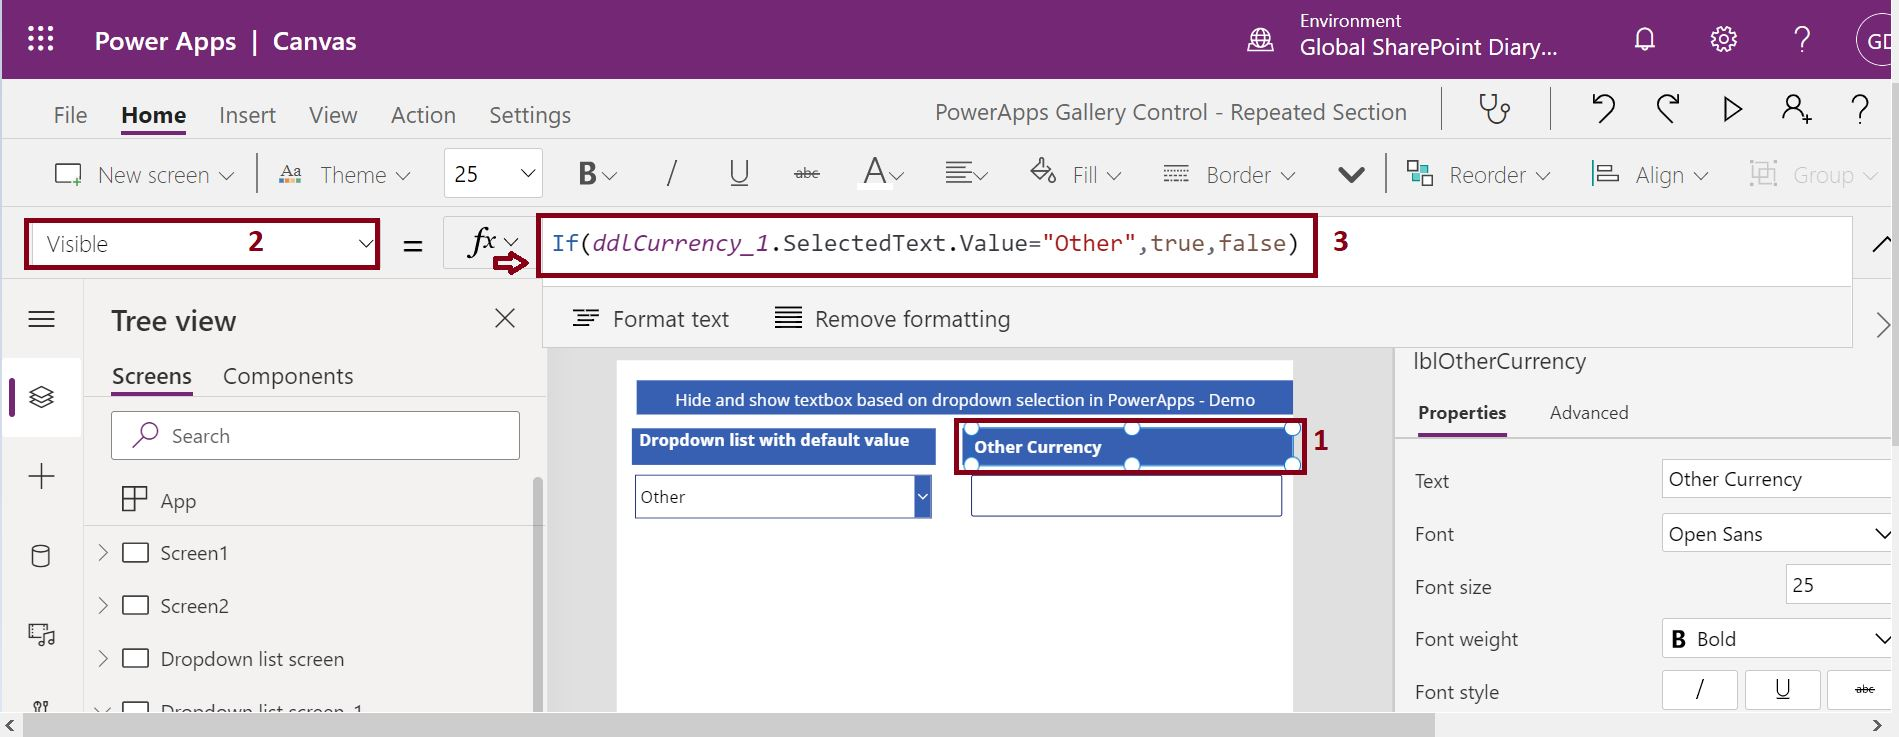 Display label control based on the dropdown list selection in PowerApps